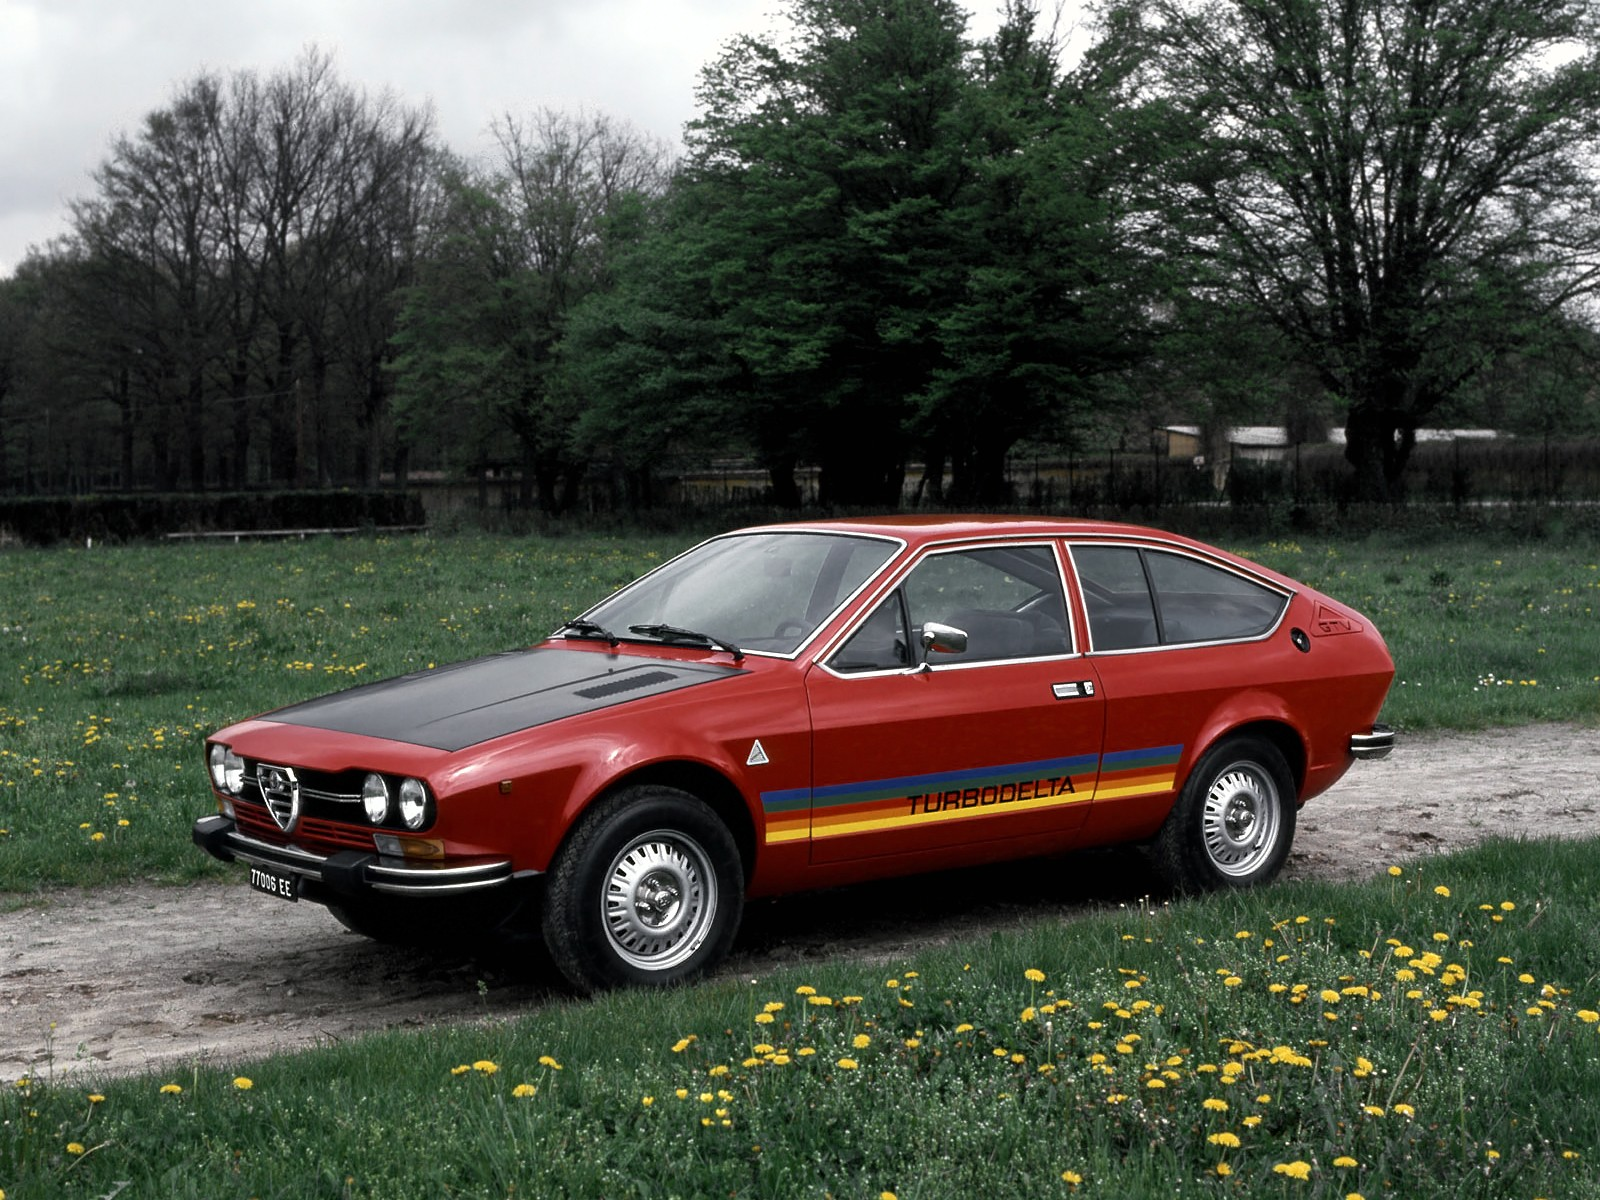 alfa romeo alfetta gtv specs photos 1976 1977 1978 1979 1980 1981 1982 autoevolution. Black Bedroom Furniture Sets. Home Design Ideas